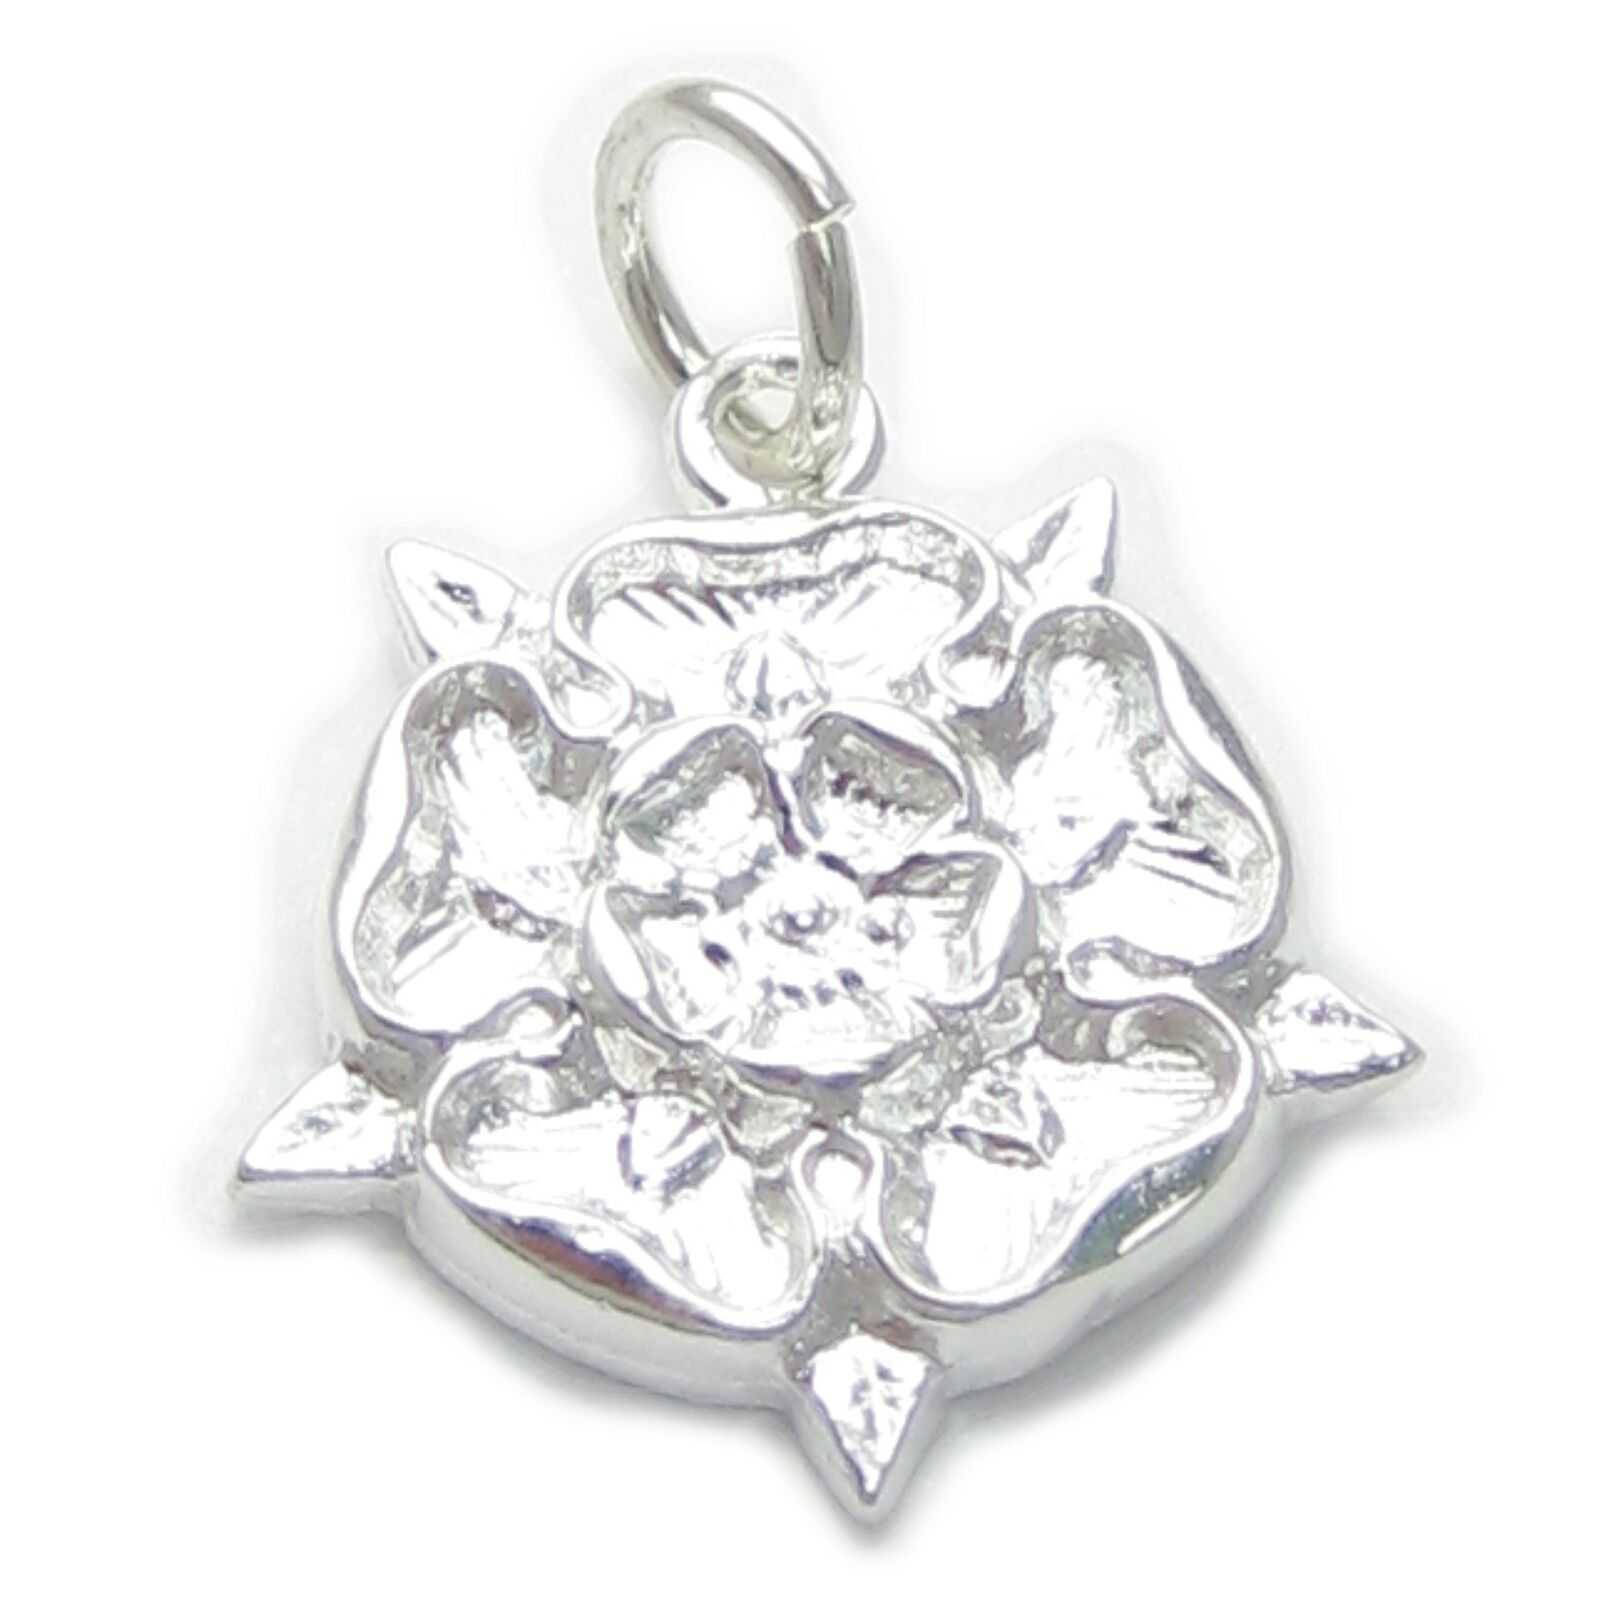 91c6dc9636d Tudor Rose sterling silver charm .925 x 1 York Union England charms EC493 1  of 5Only 3 available ...